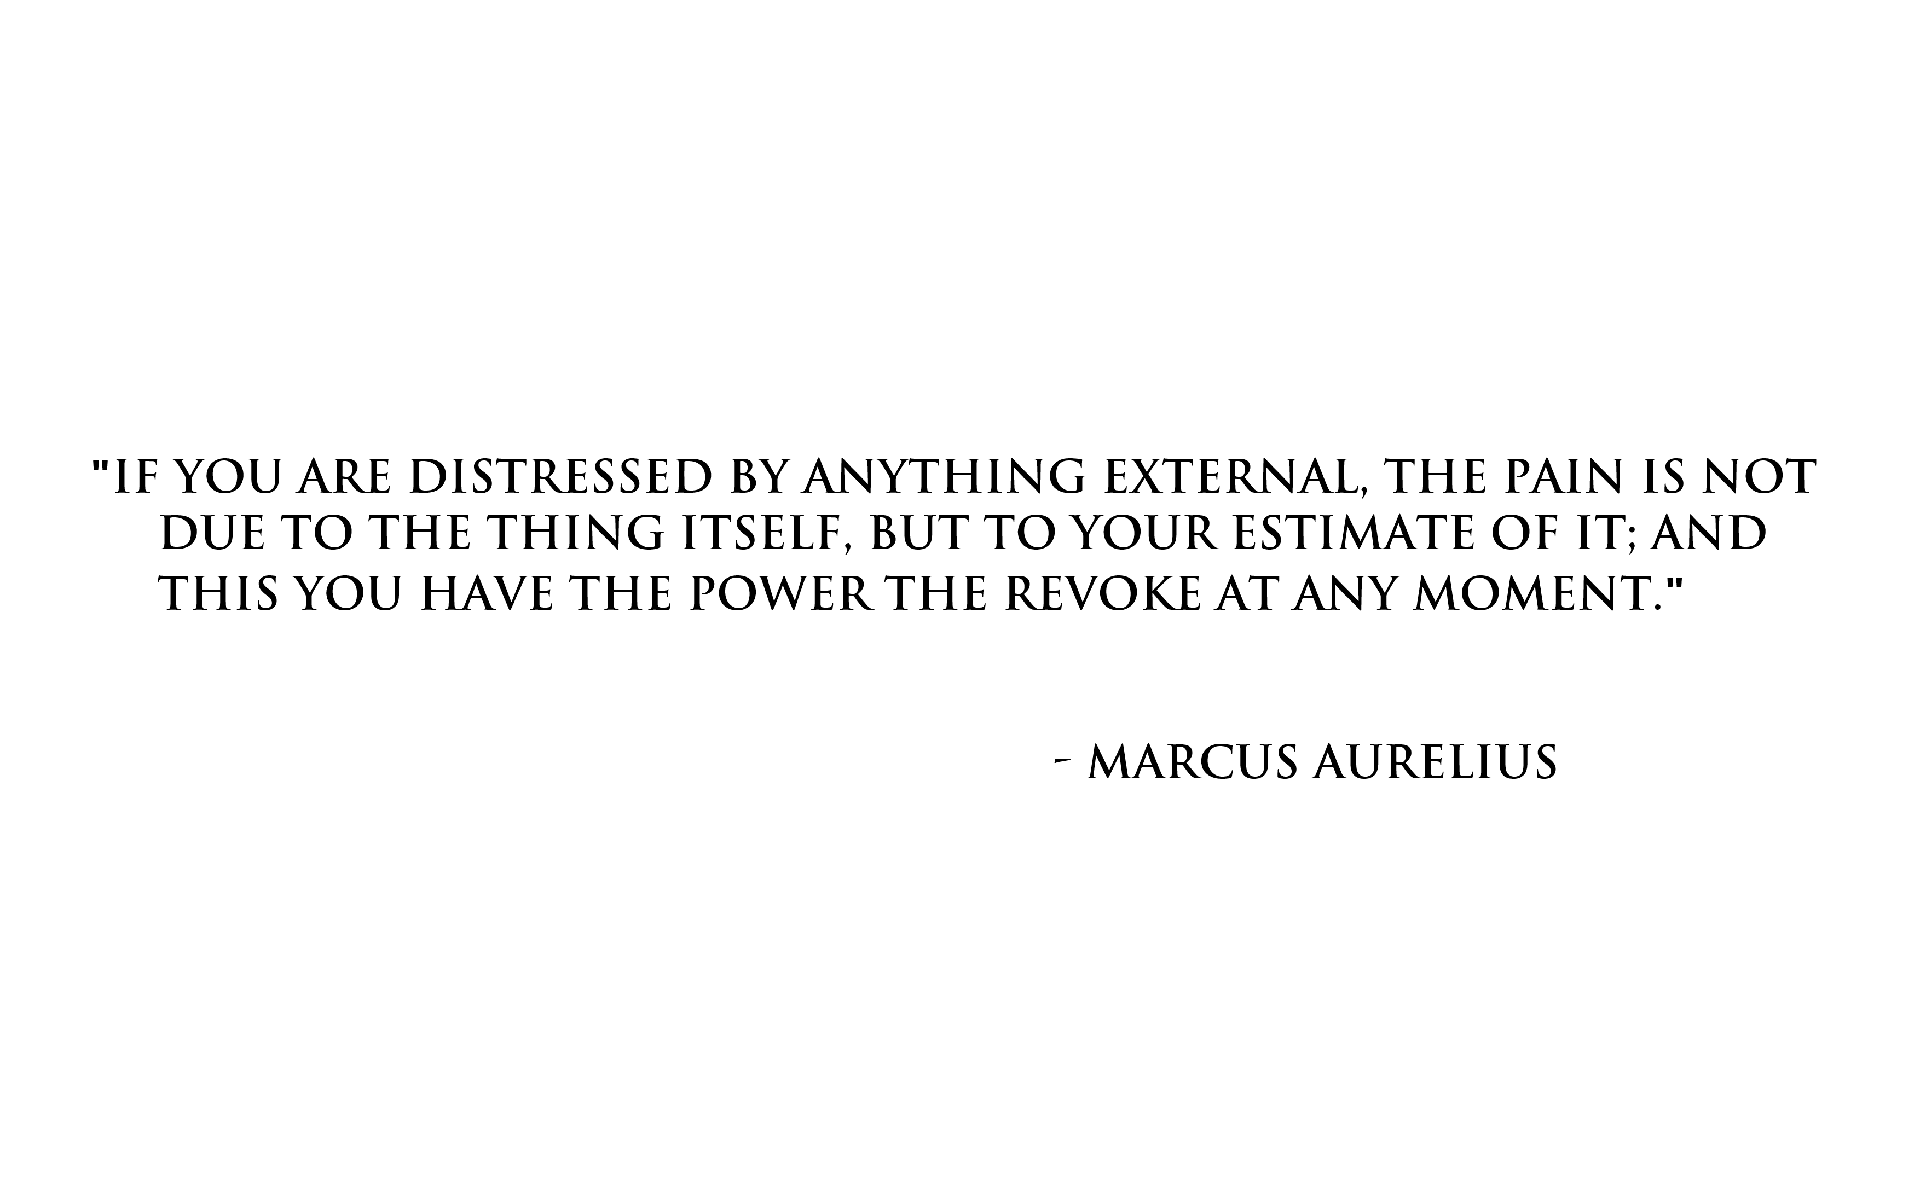 Marcus Aurelius on pain